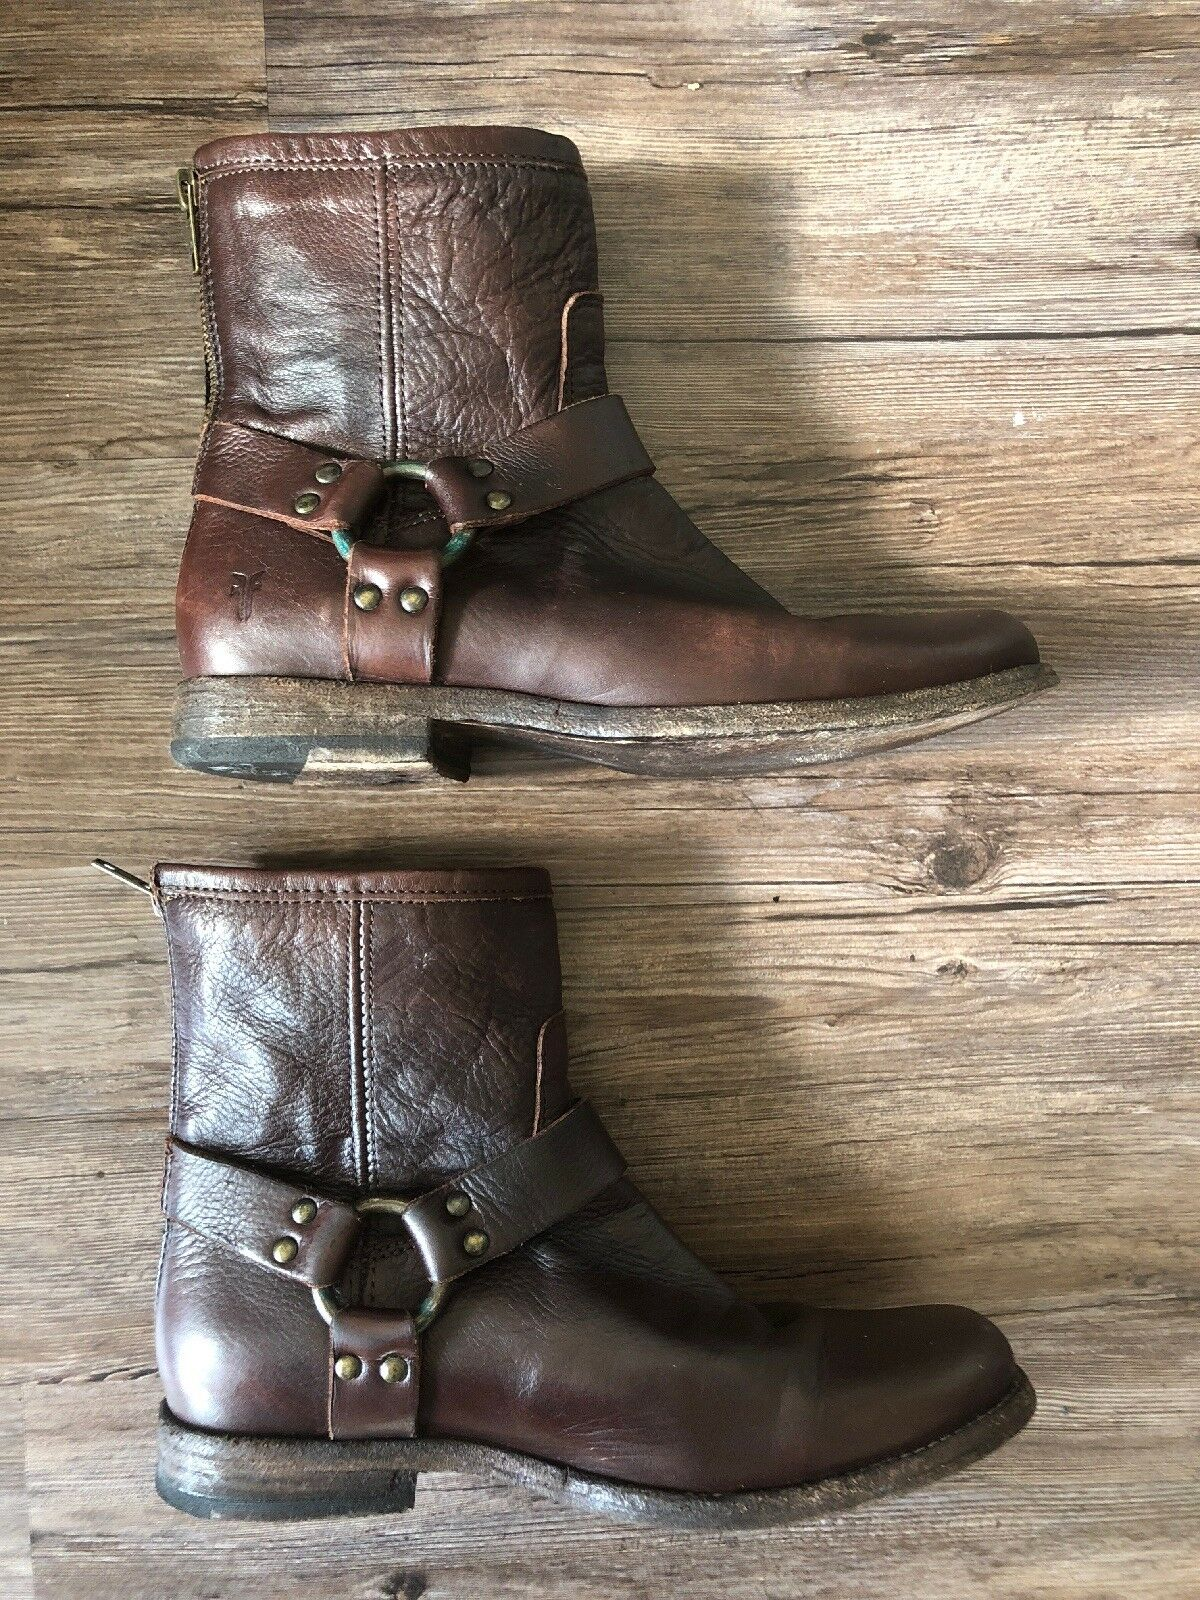 Frye Phillip Harness Cognac Soft Vintage Leather Ankle Boots Zipper US 7.5 Rare